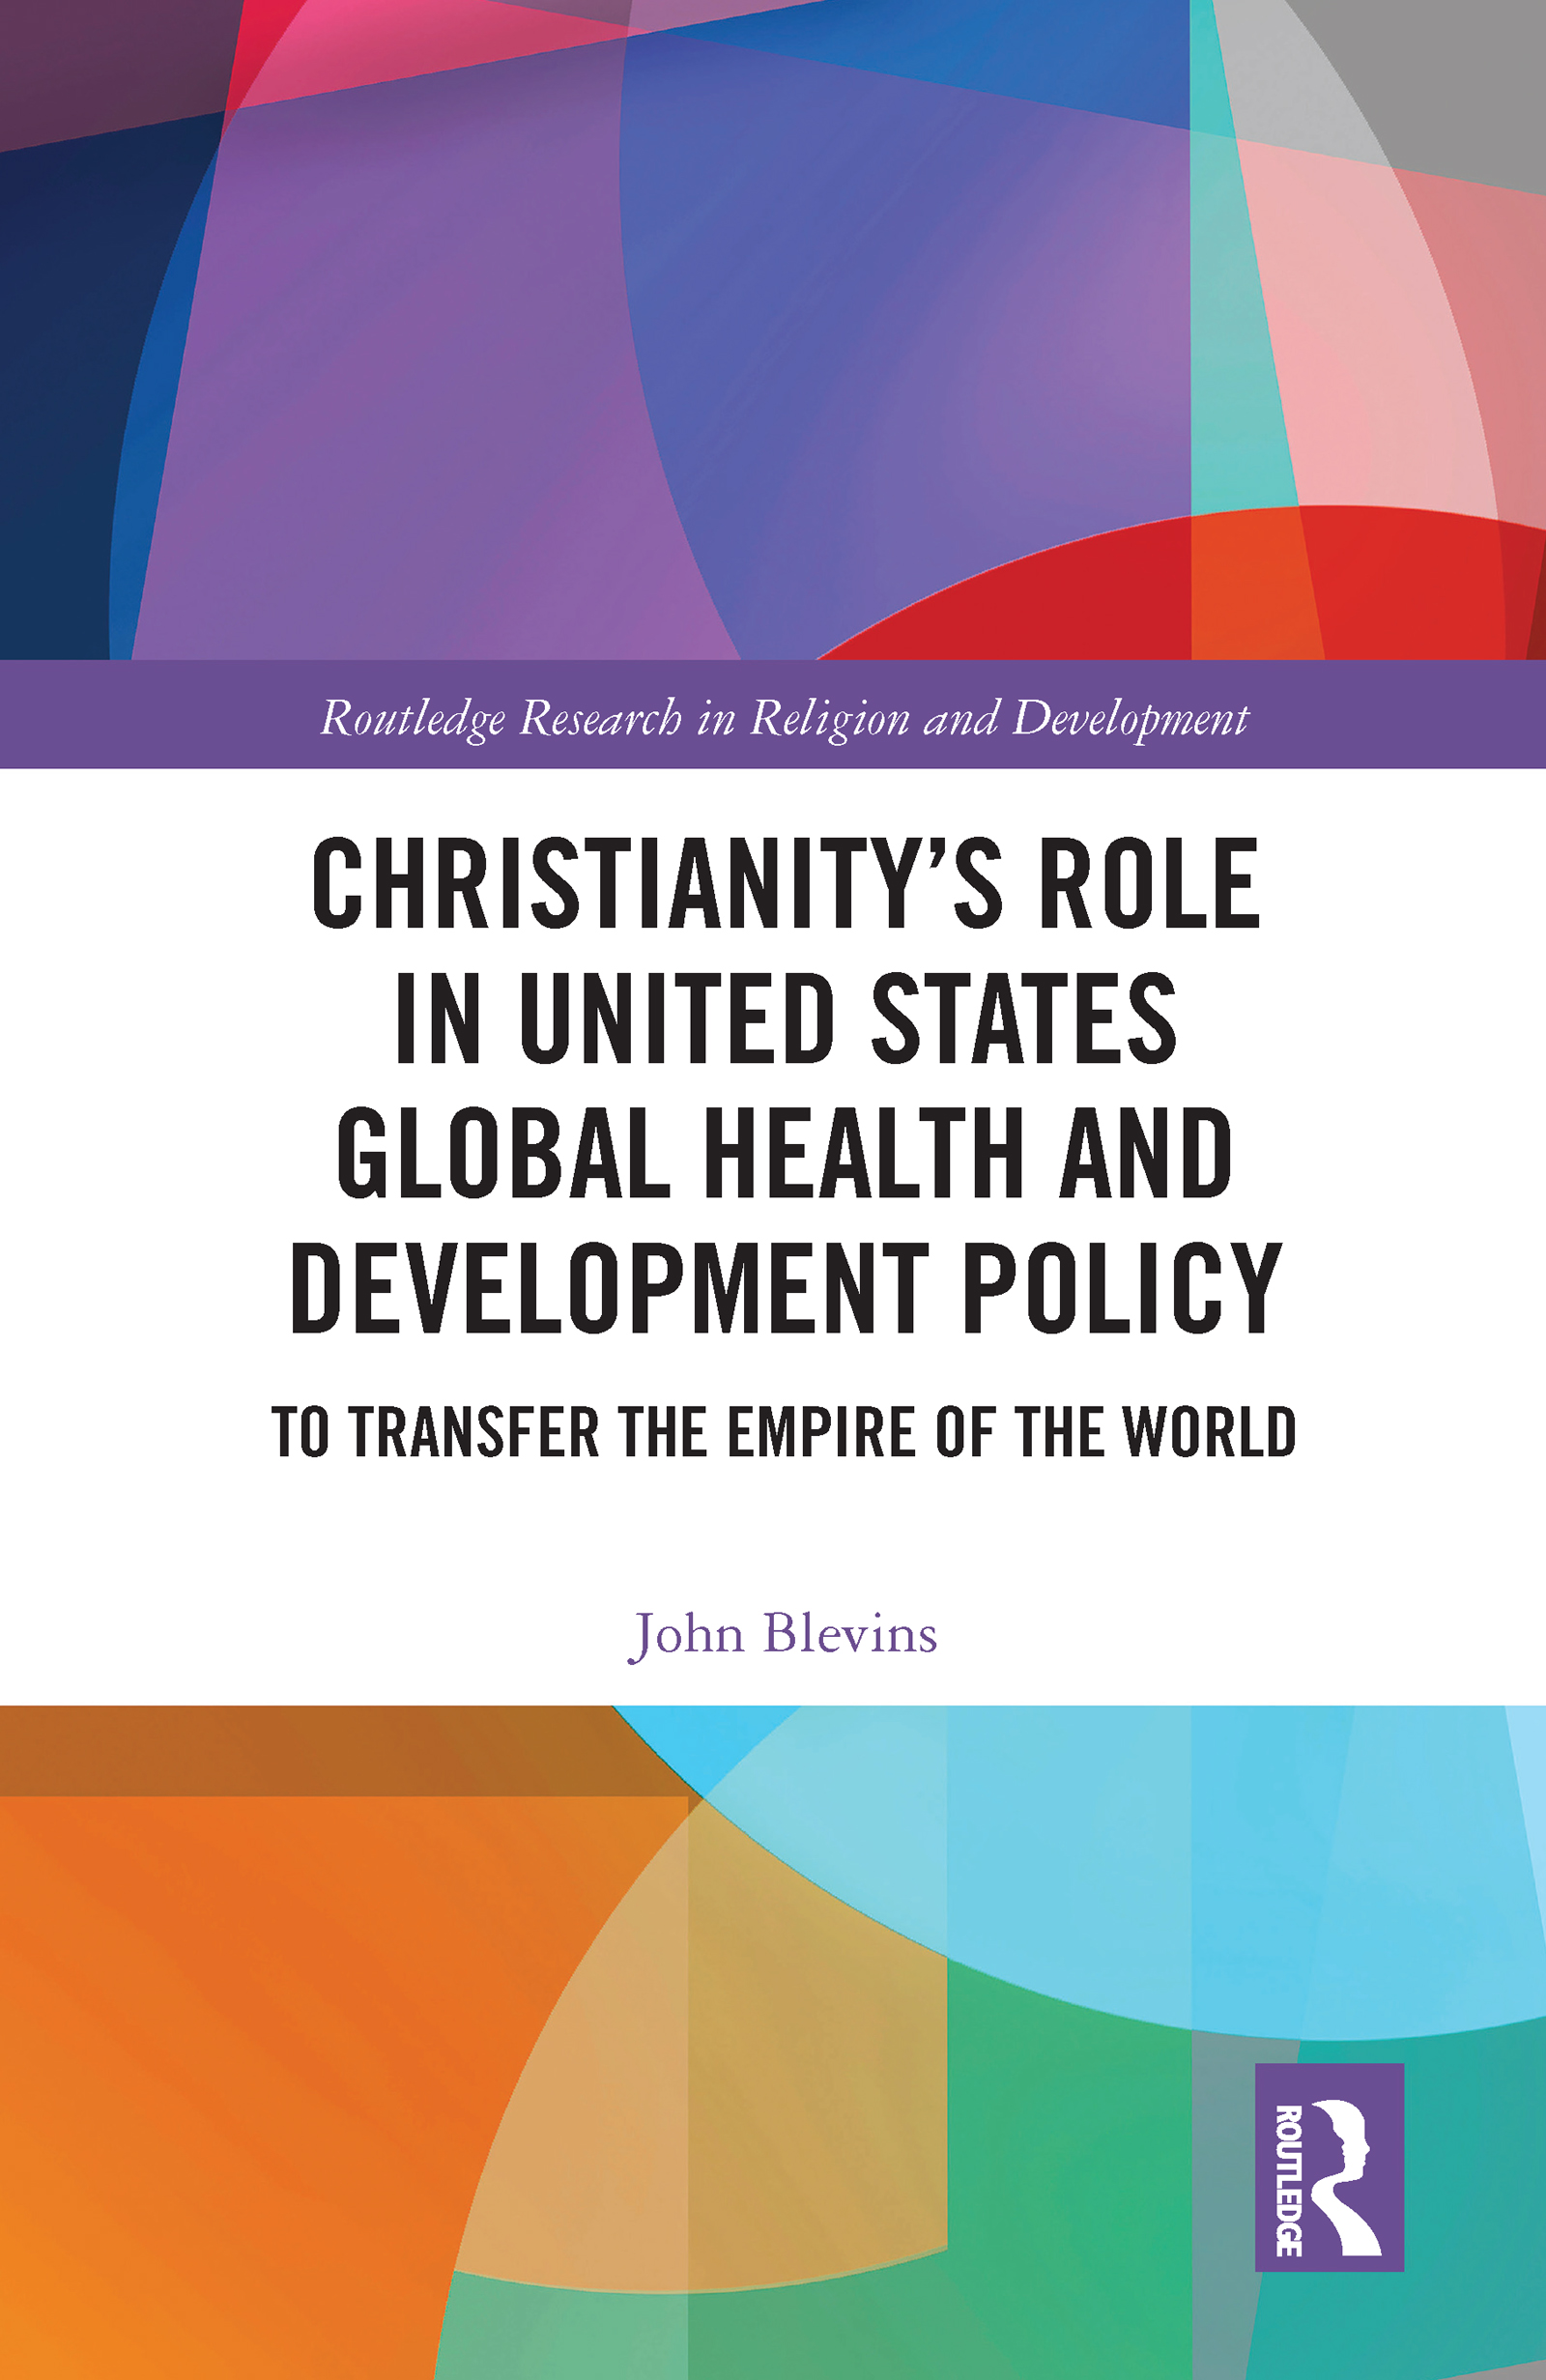 Christianity's Role in United States Global Health and Development Policy